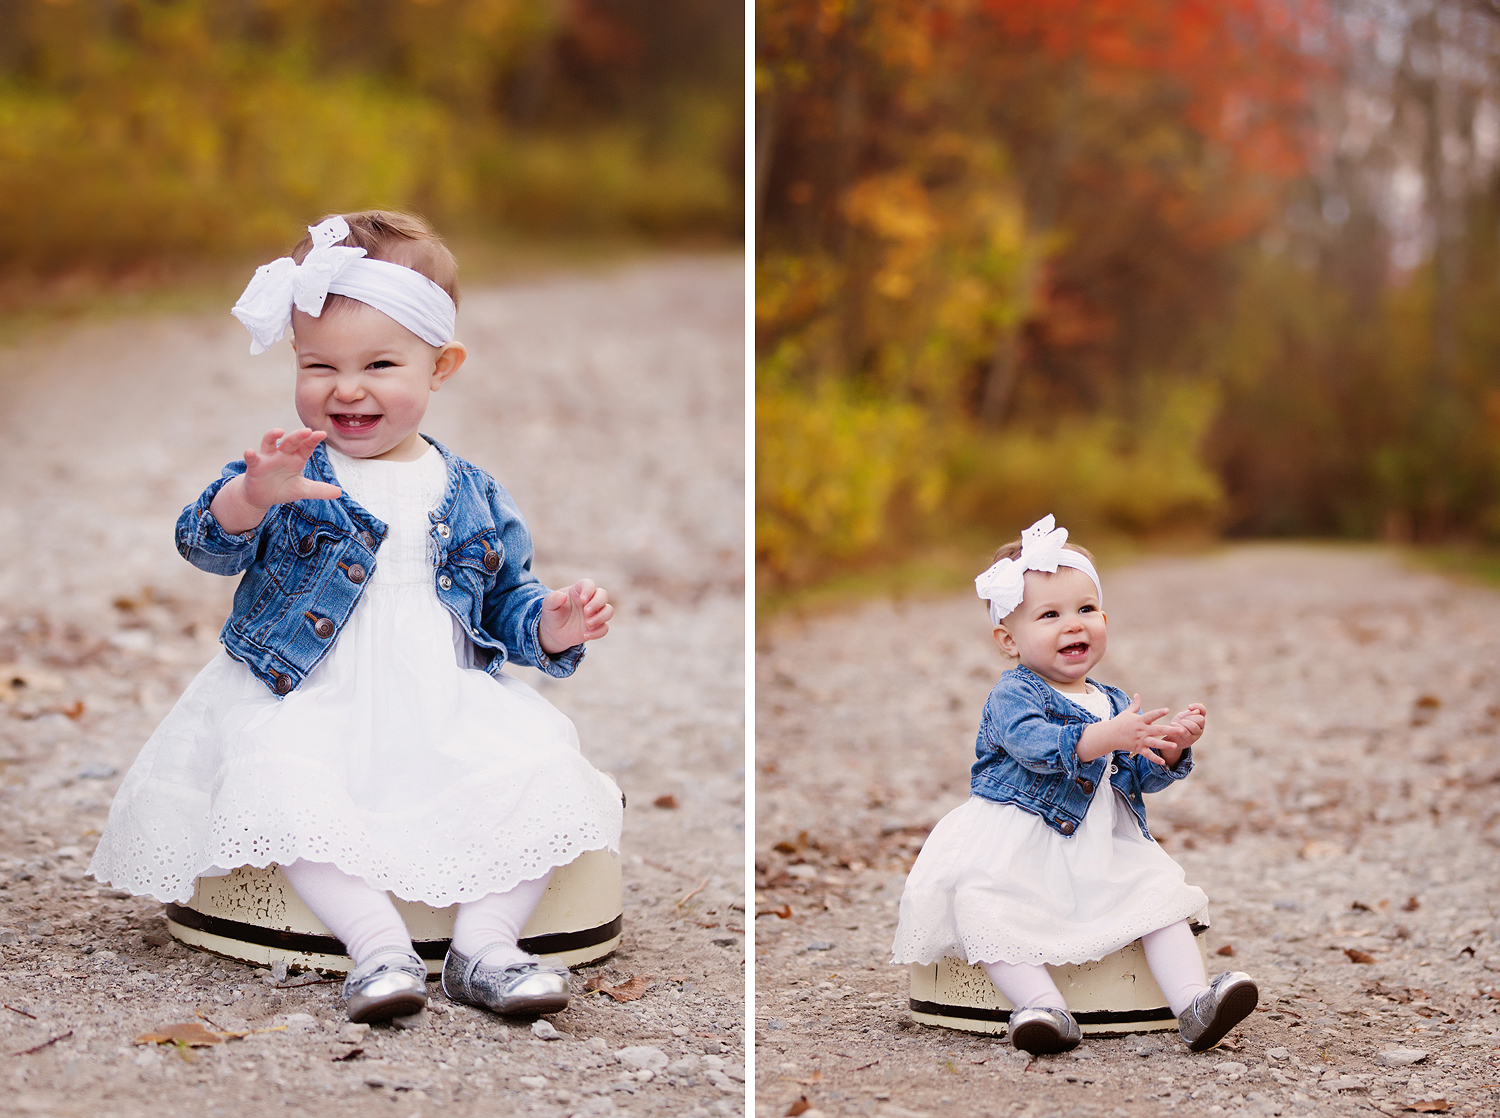 outdoor-fall-baby-childrens-portrait-photographer-northeast-ohio.jpg